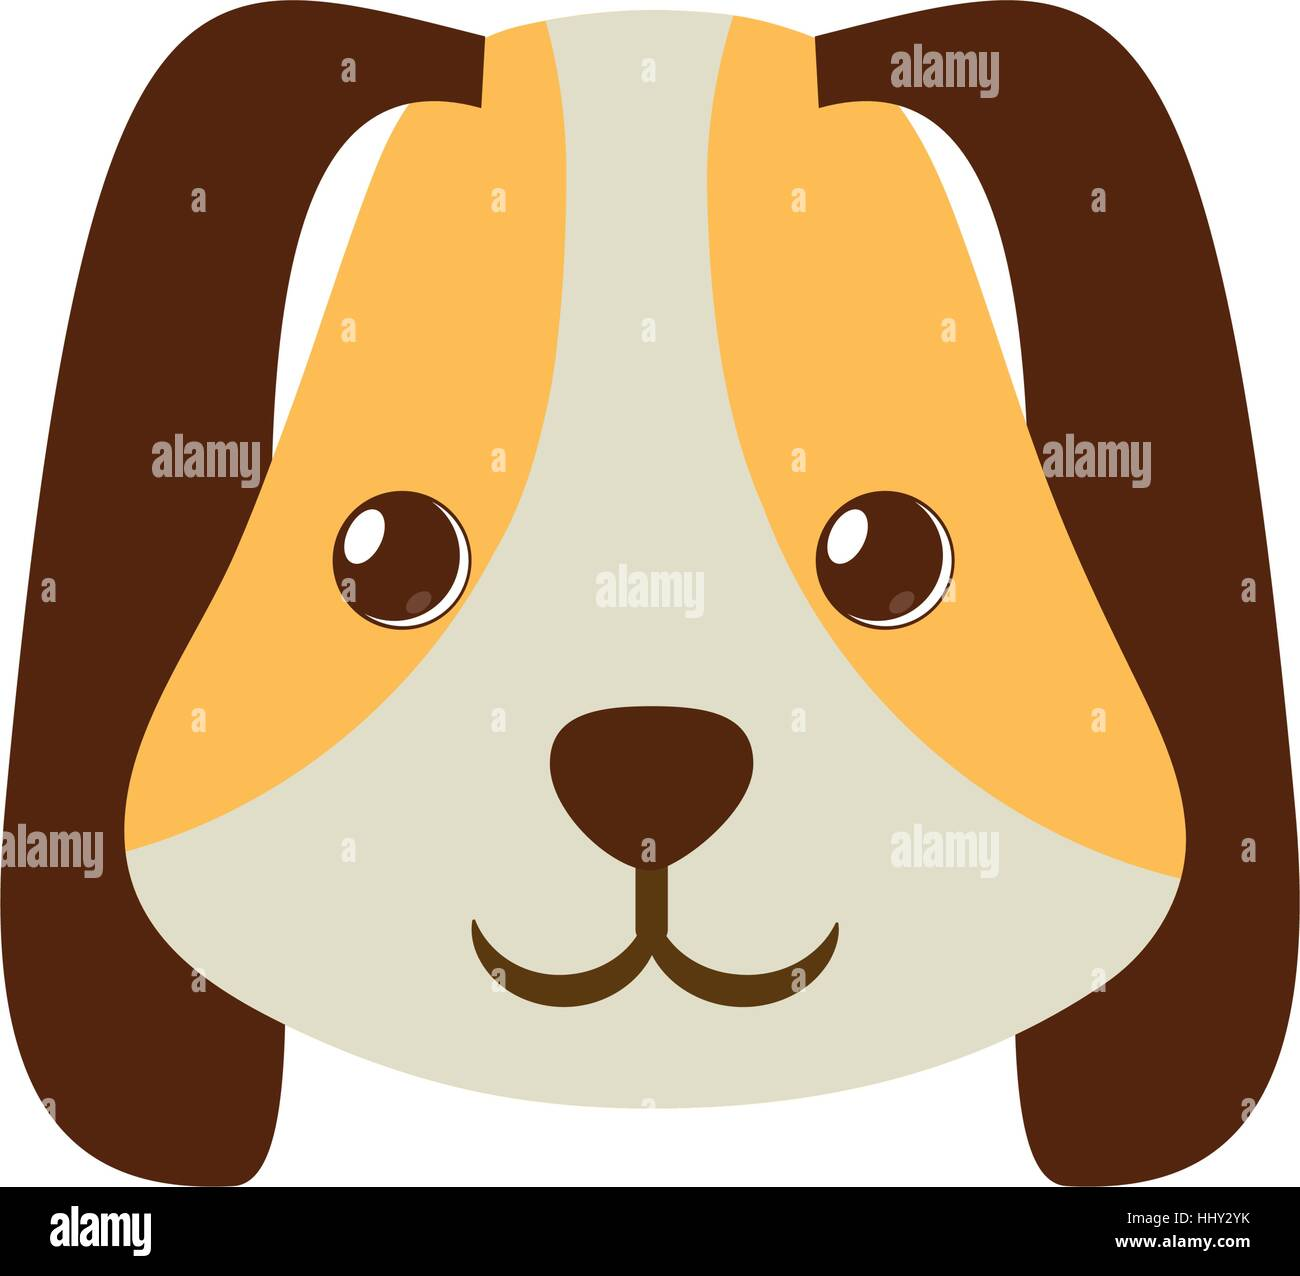 puppy face ear long brown pet - Stock Image